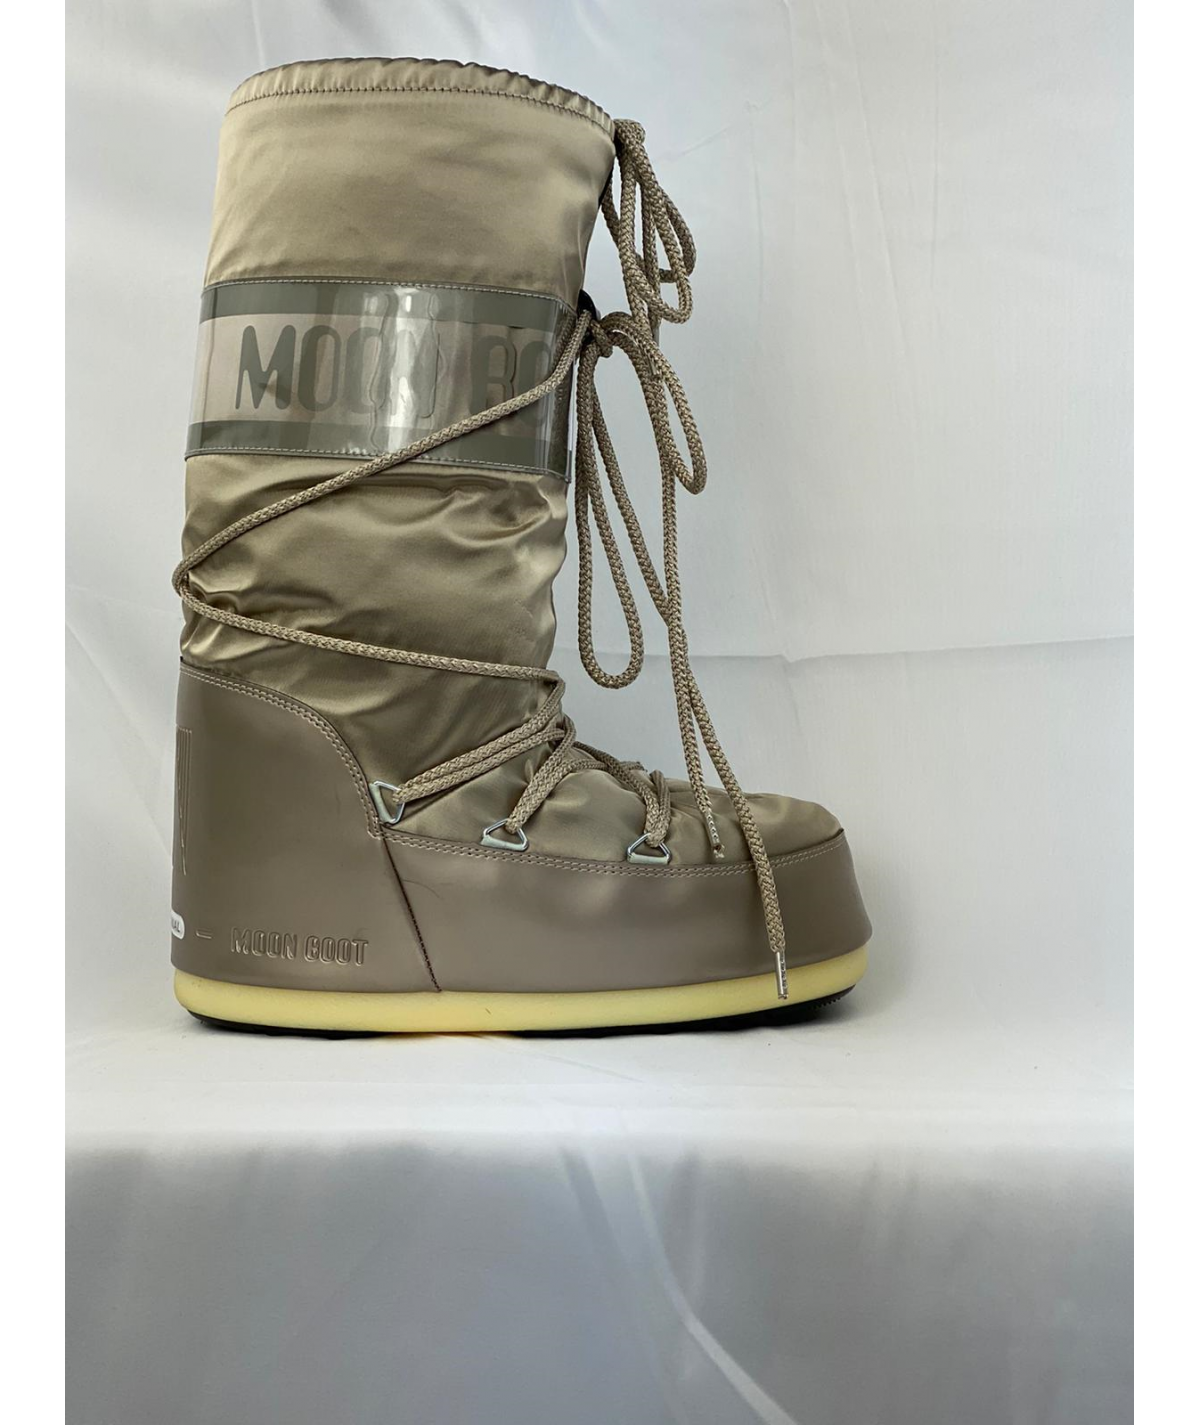 MOON BOOT - Original